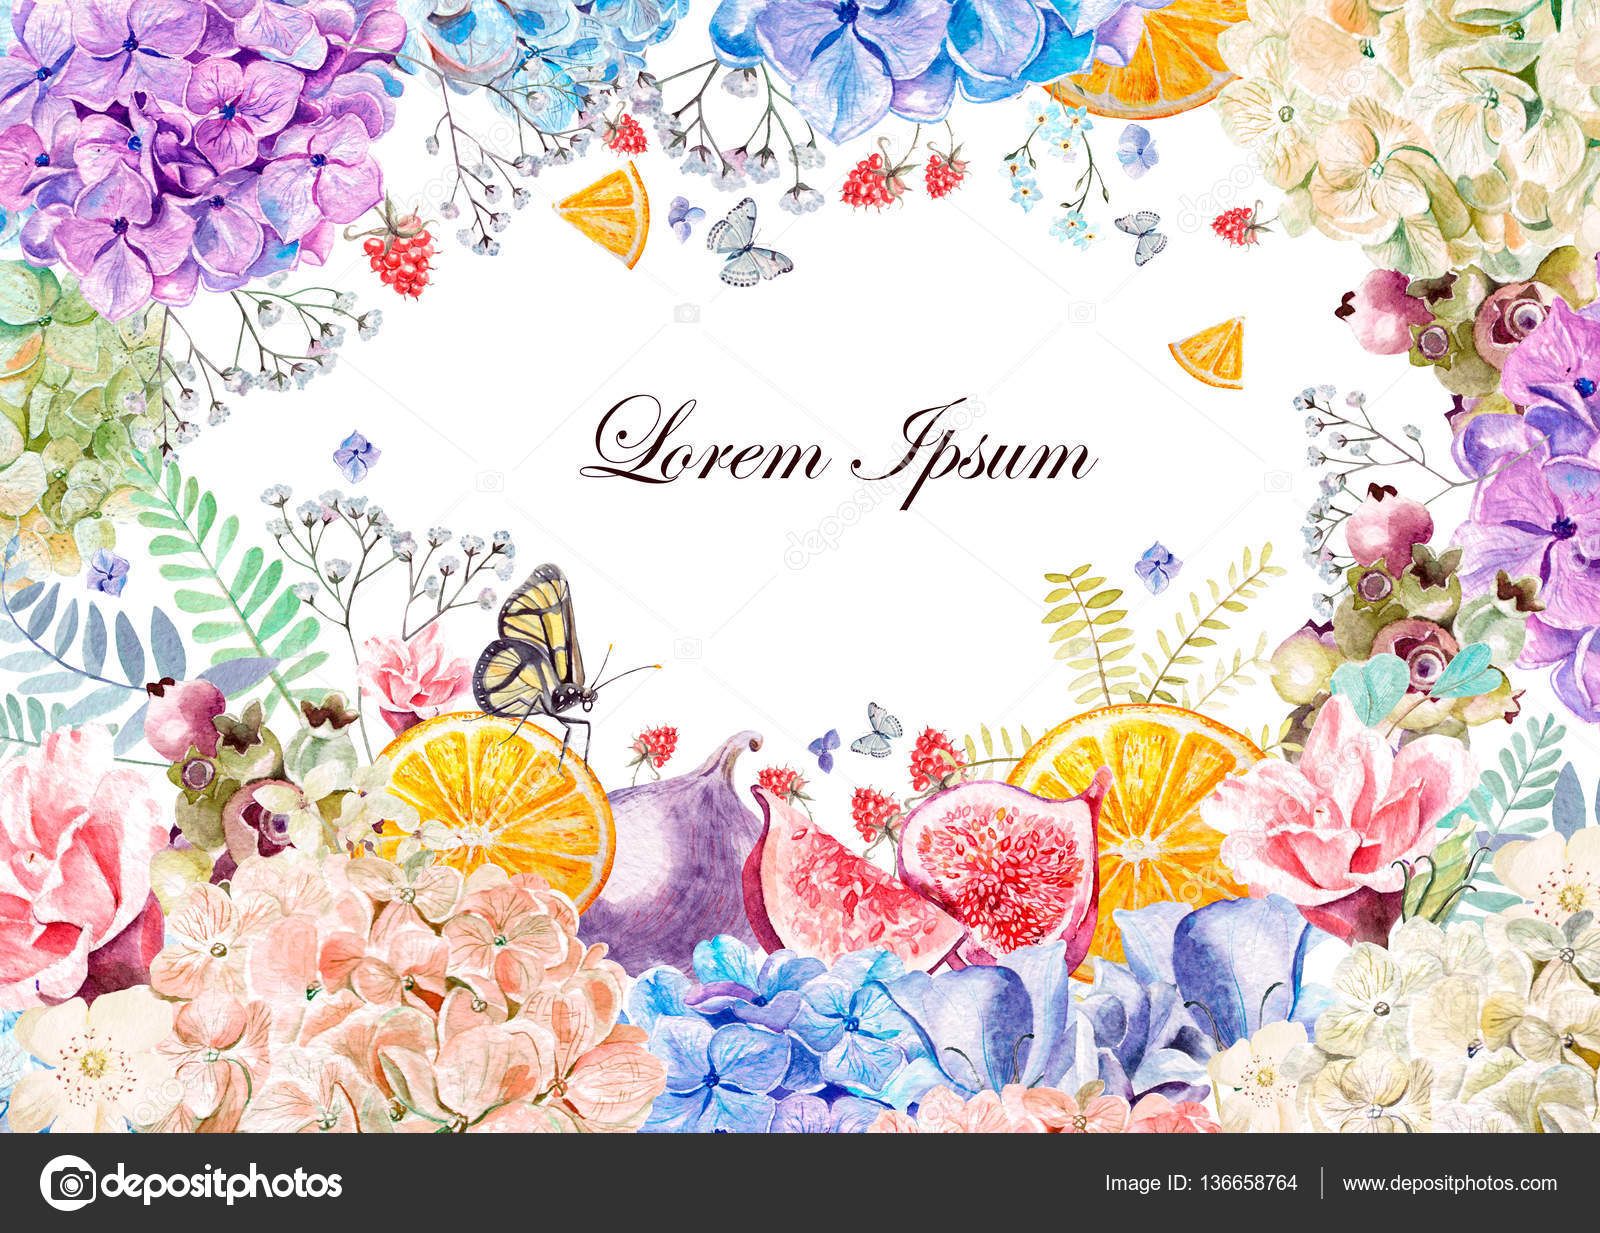 Colorful Watercolor Greeting Card Or Wedding Invitation From